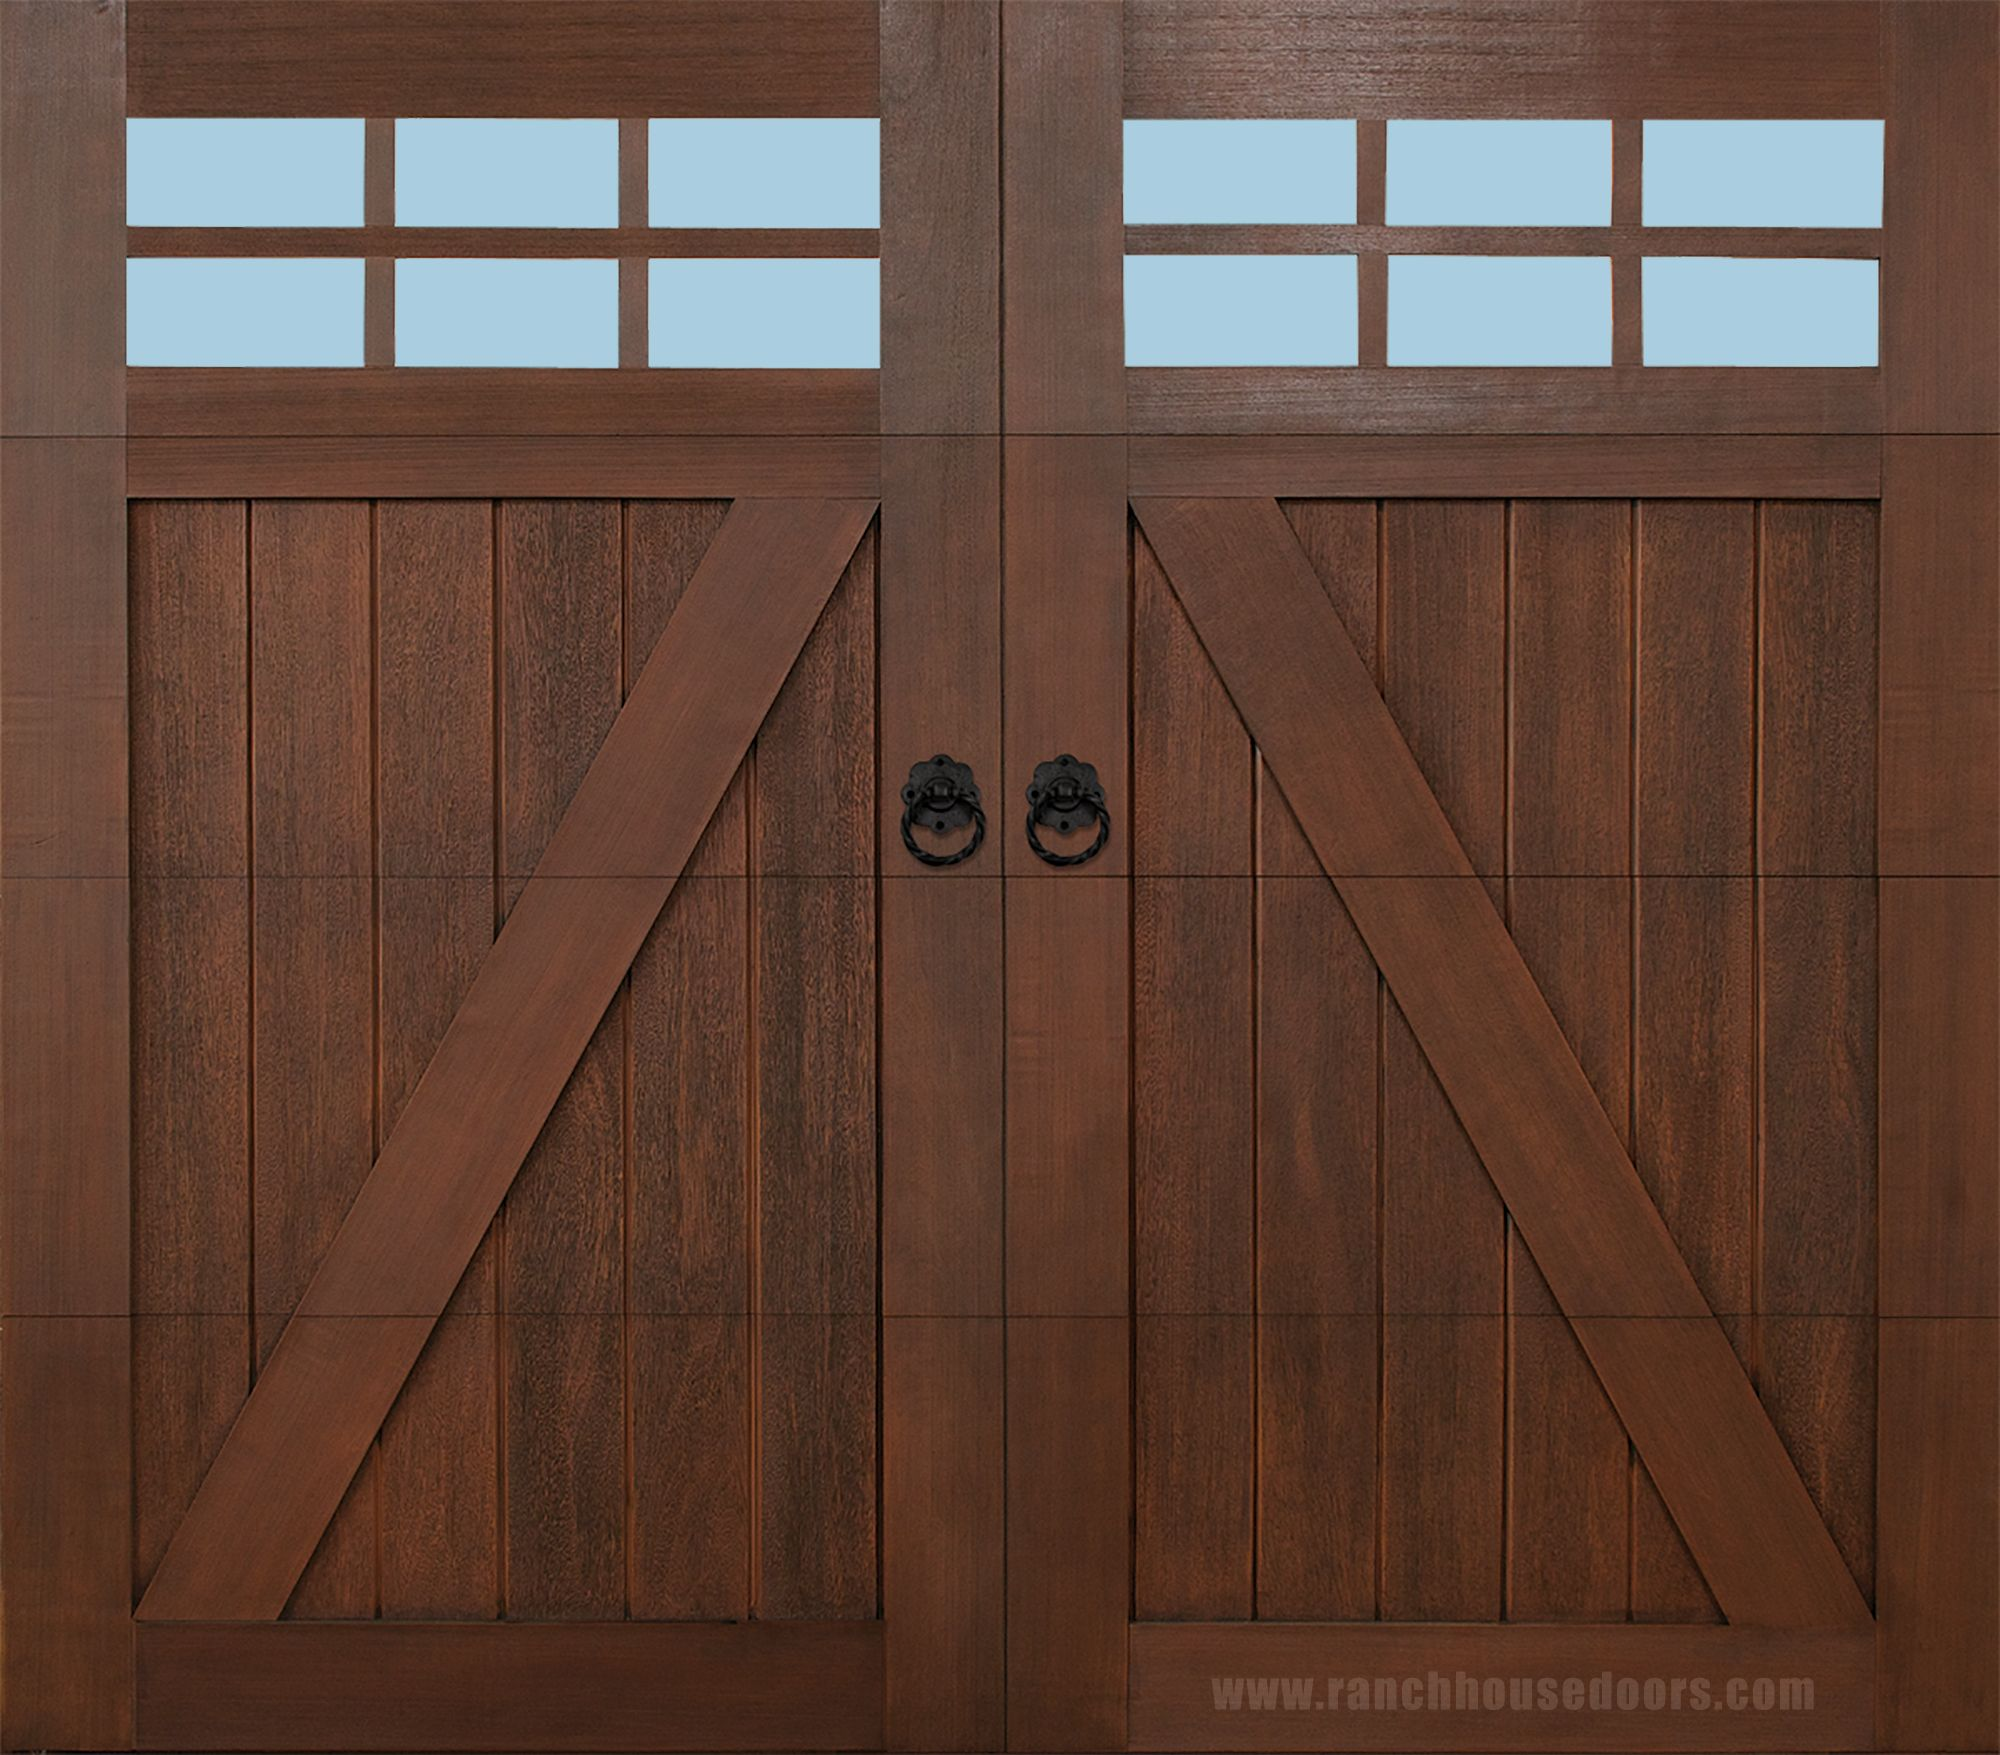 Garage door repairs by s amp t garage doors of northern virginia - Ranch House Doors Model 501 Elements Collection Faux Wood Garage Door With Fh 511 Ring